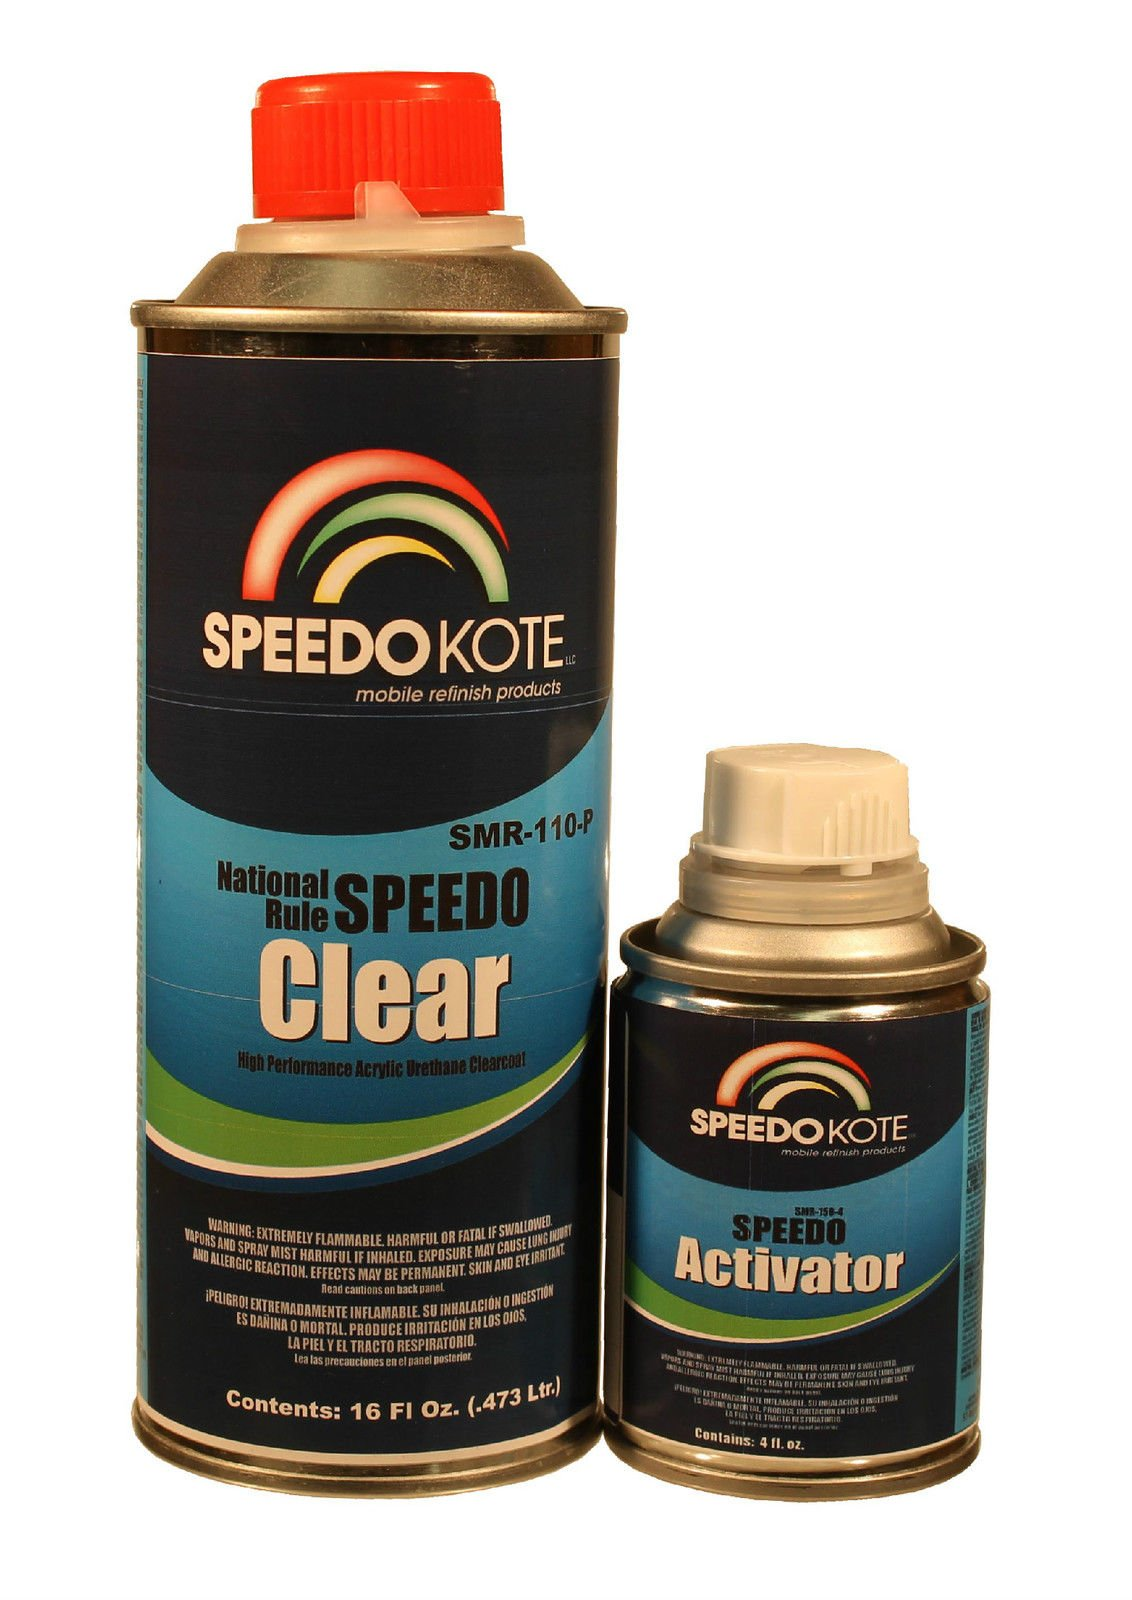 Extremely Fast Dry Clear Coat, 4:1 Spot Clearcoat med Pint Kit, SMR-110-P/150-4